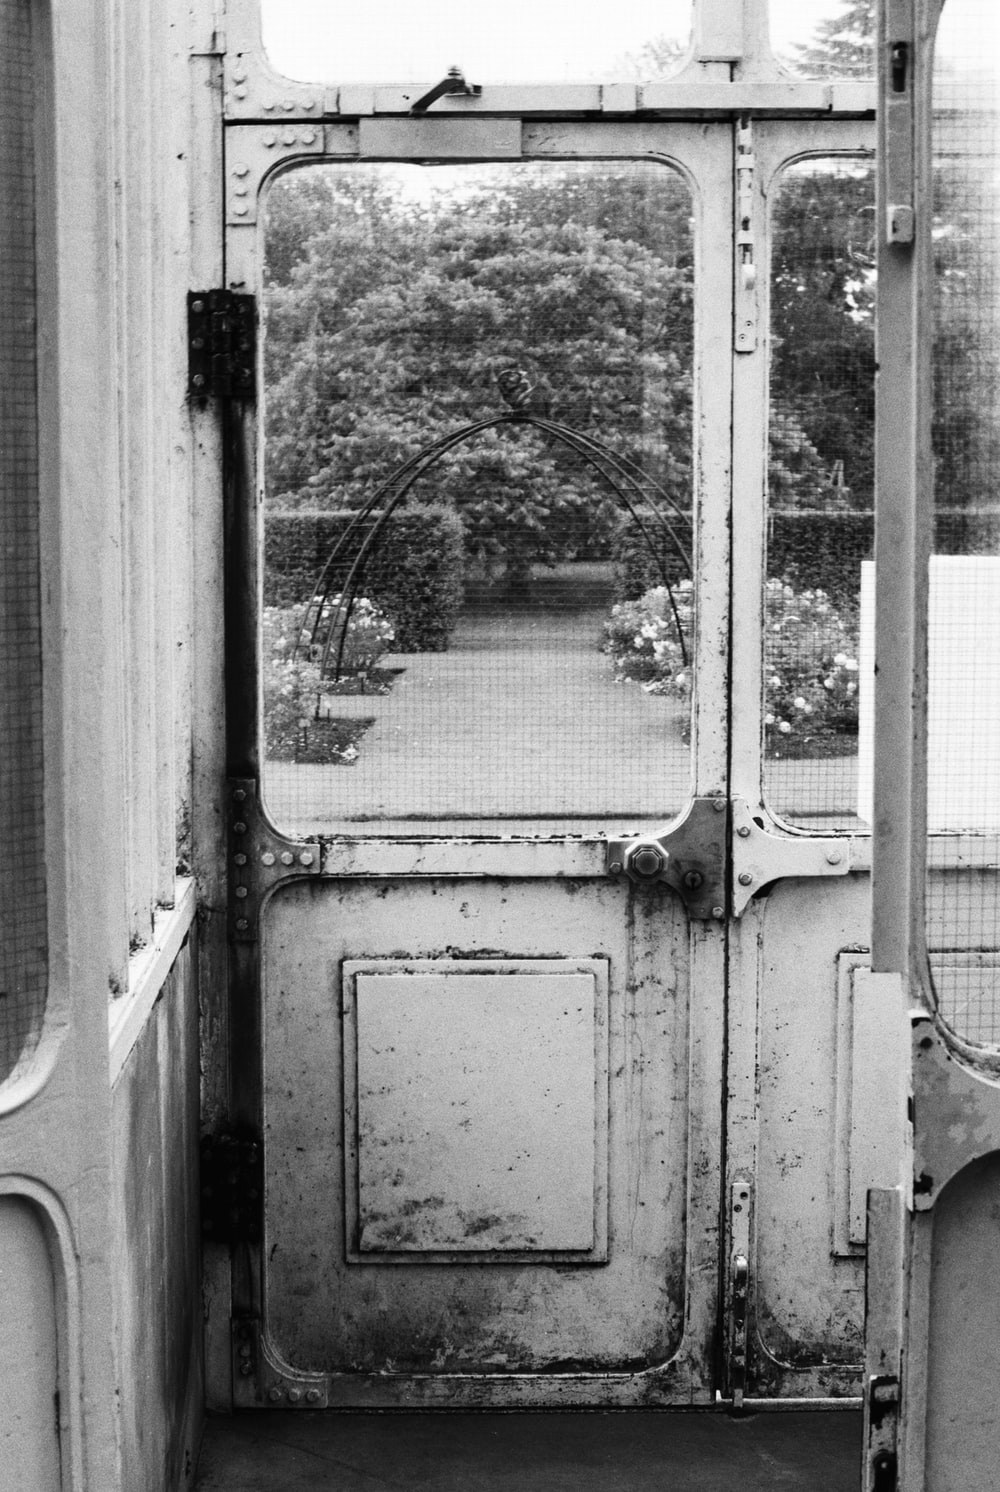 grayscale photo of a train